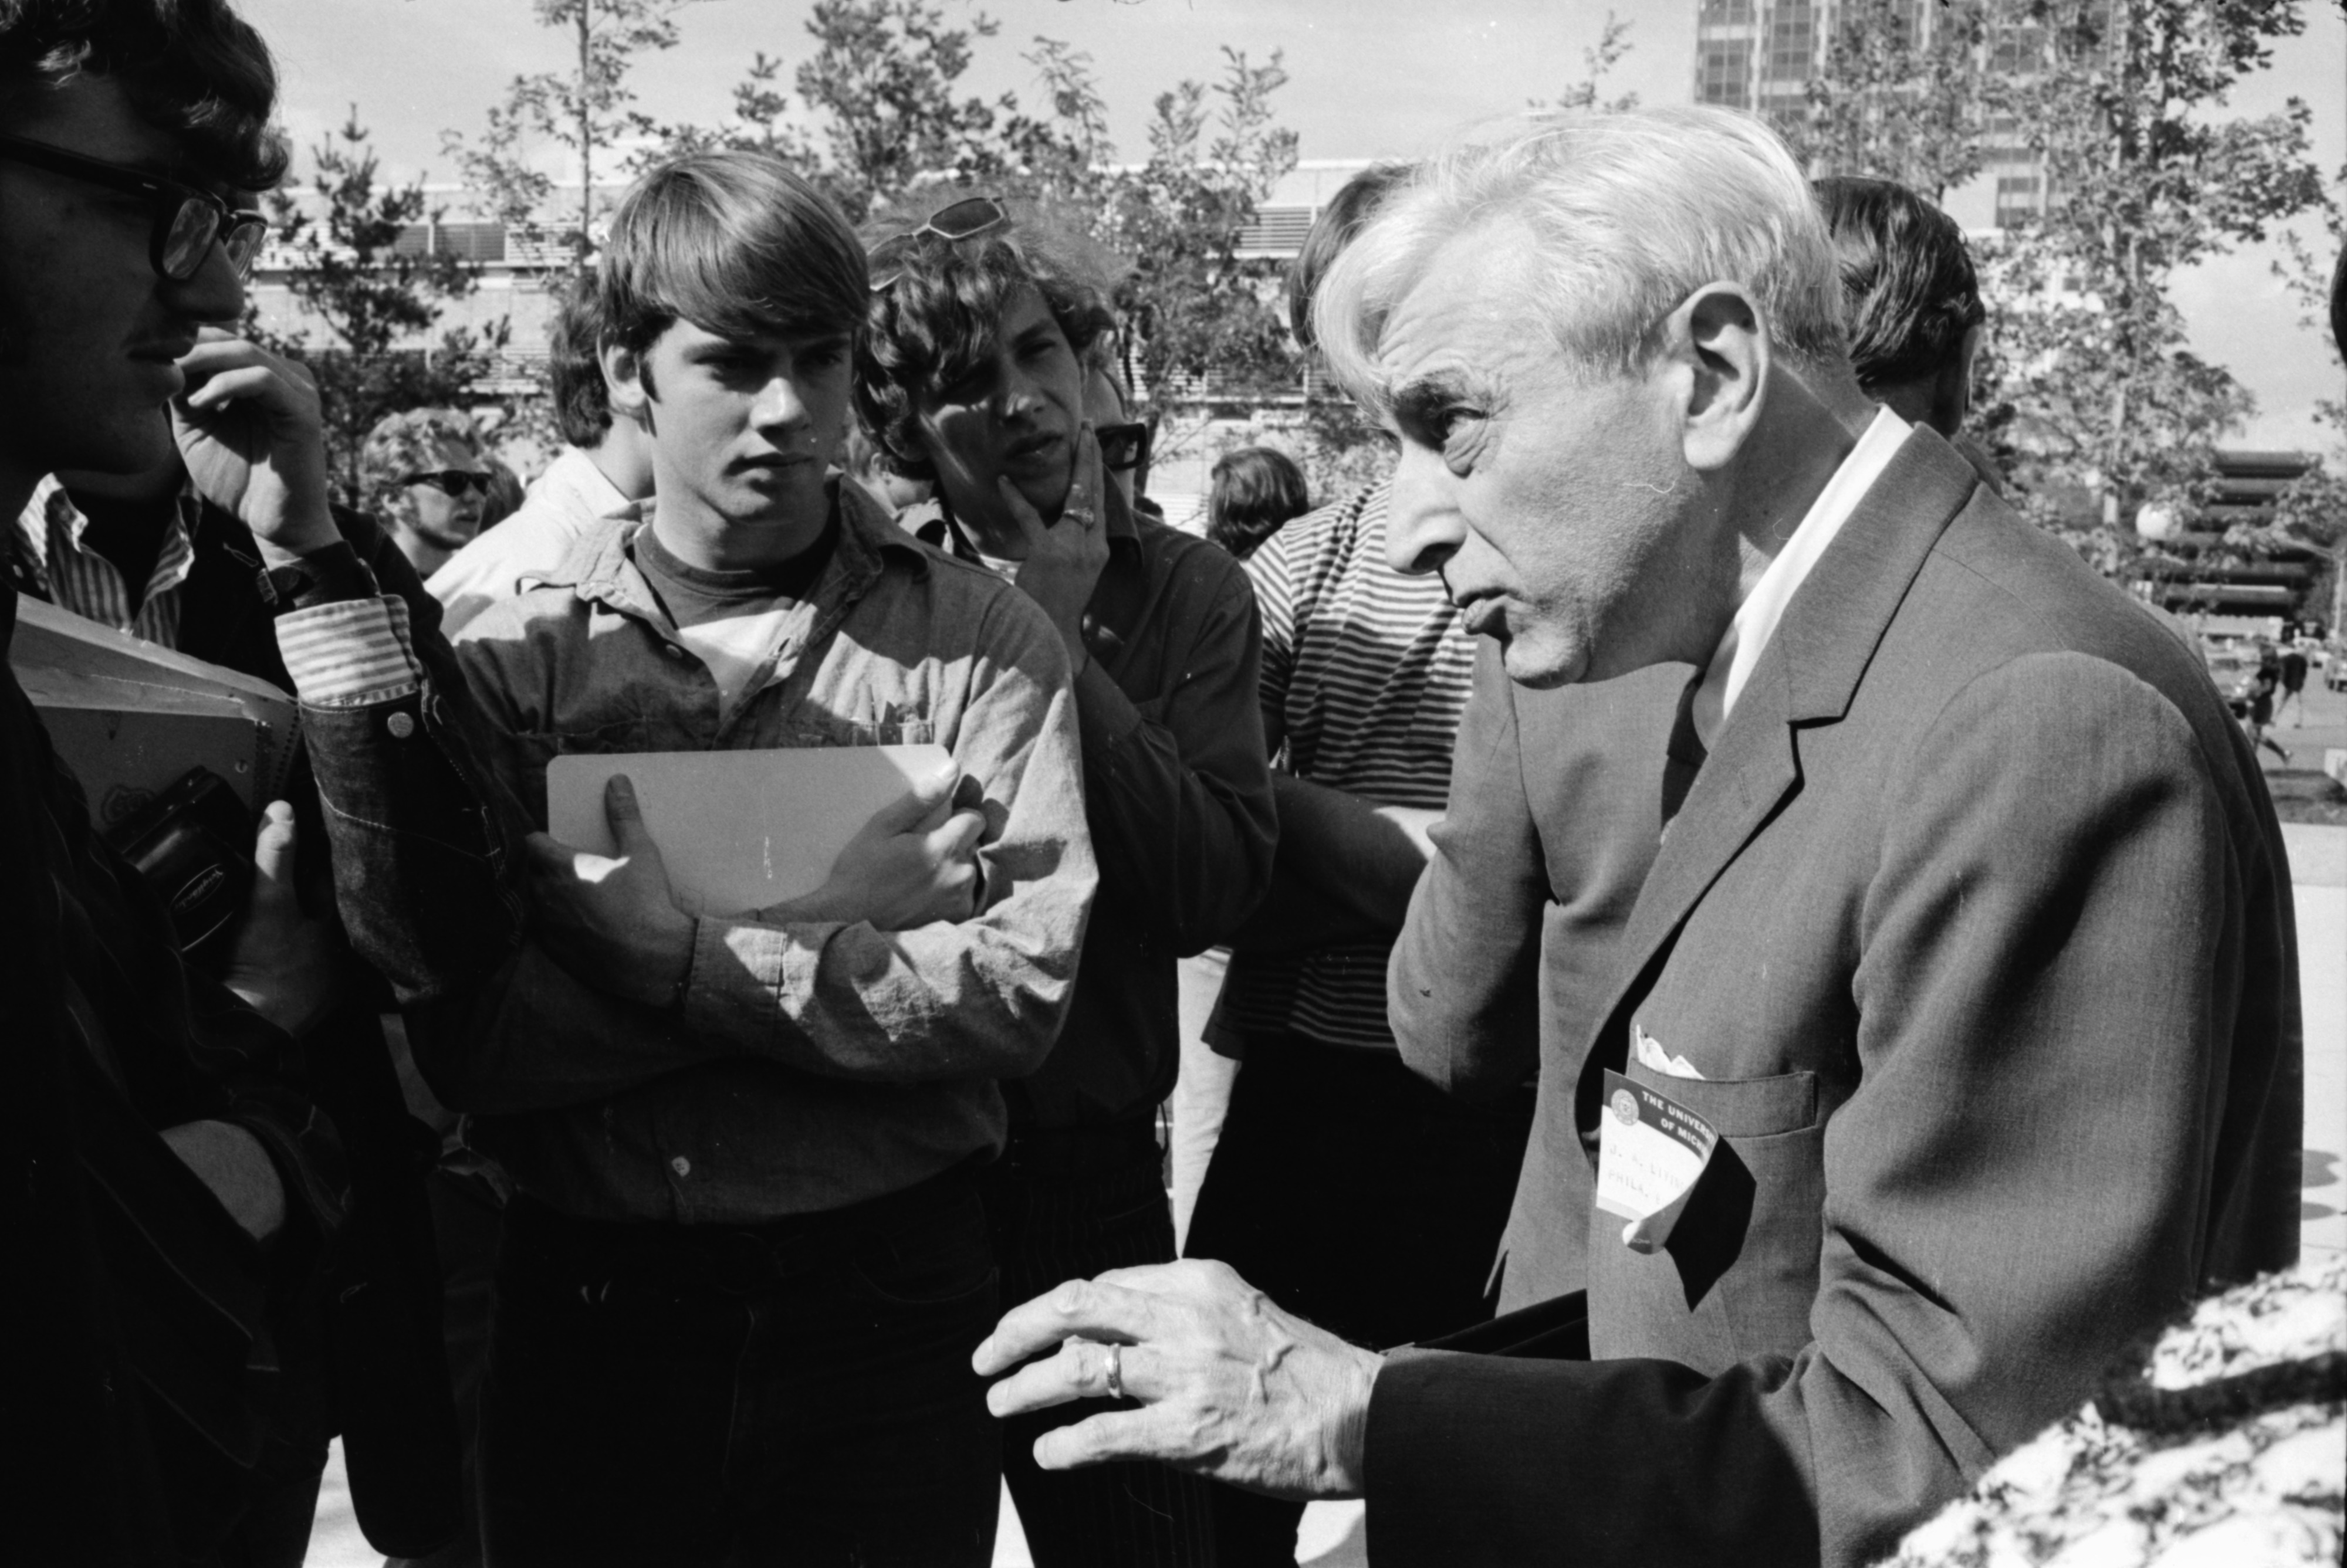 Writer Joseph A. Livingston Speaks to Student Protesters, September 1969 image